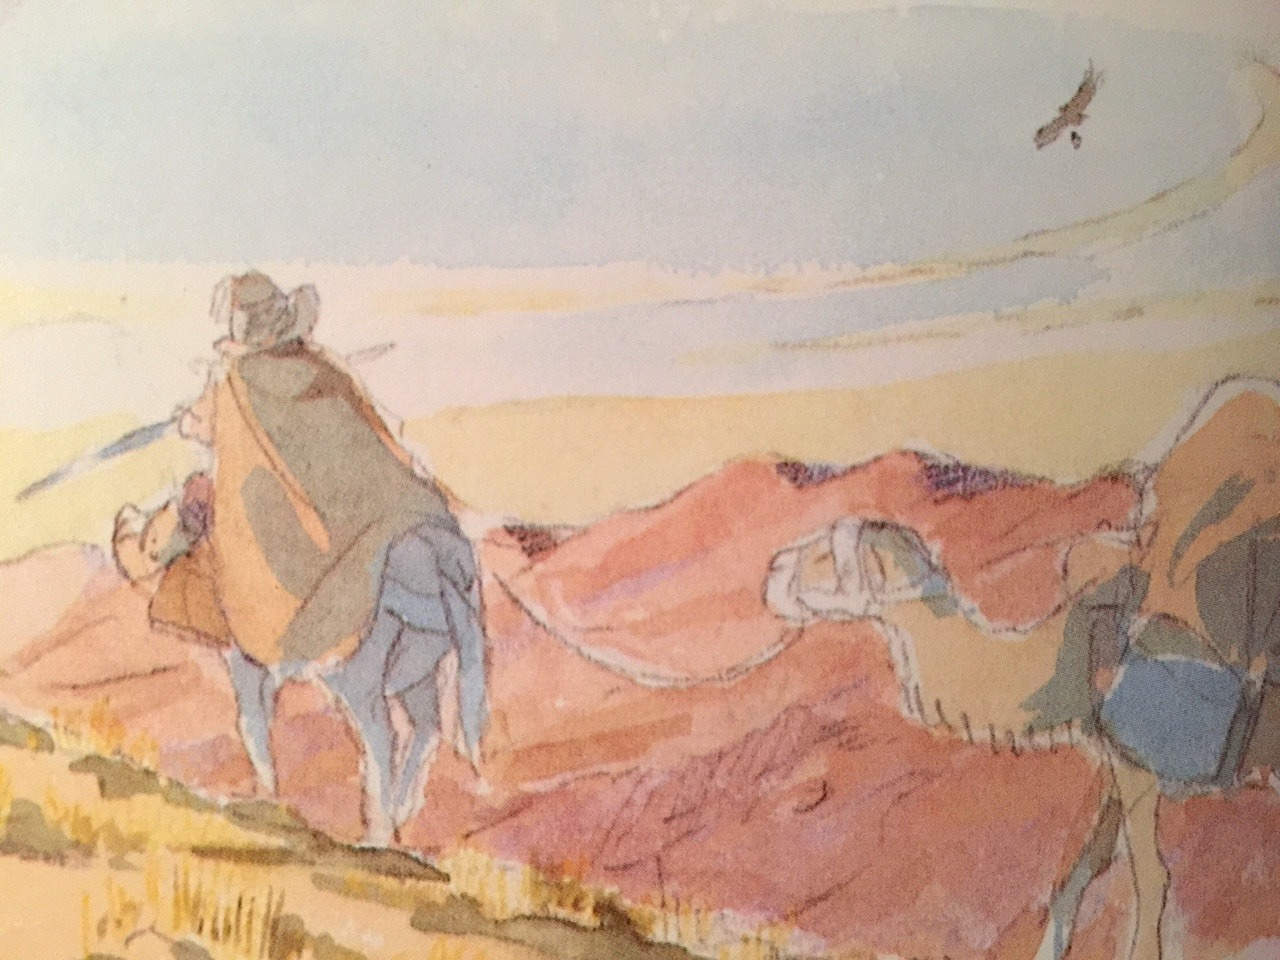 Lord-Yupa-The-Art-Of-Nausica-Of-The-Valley-Of-The-Wind-Watercolor-Impressions-Hayao-Miyazaki-nausicaa-of-the-valley-of-the-wind-40590575-1280-960.jpg